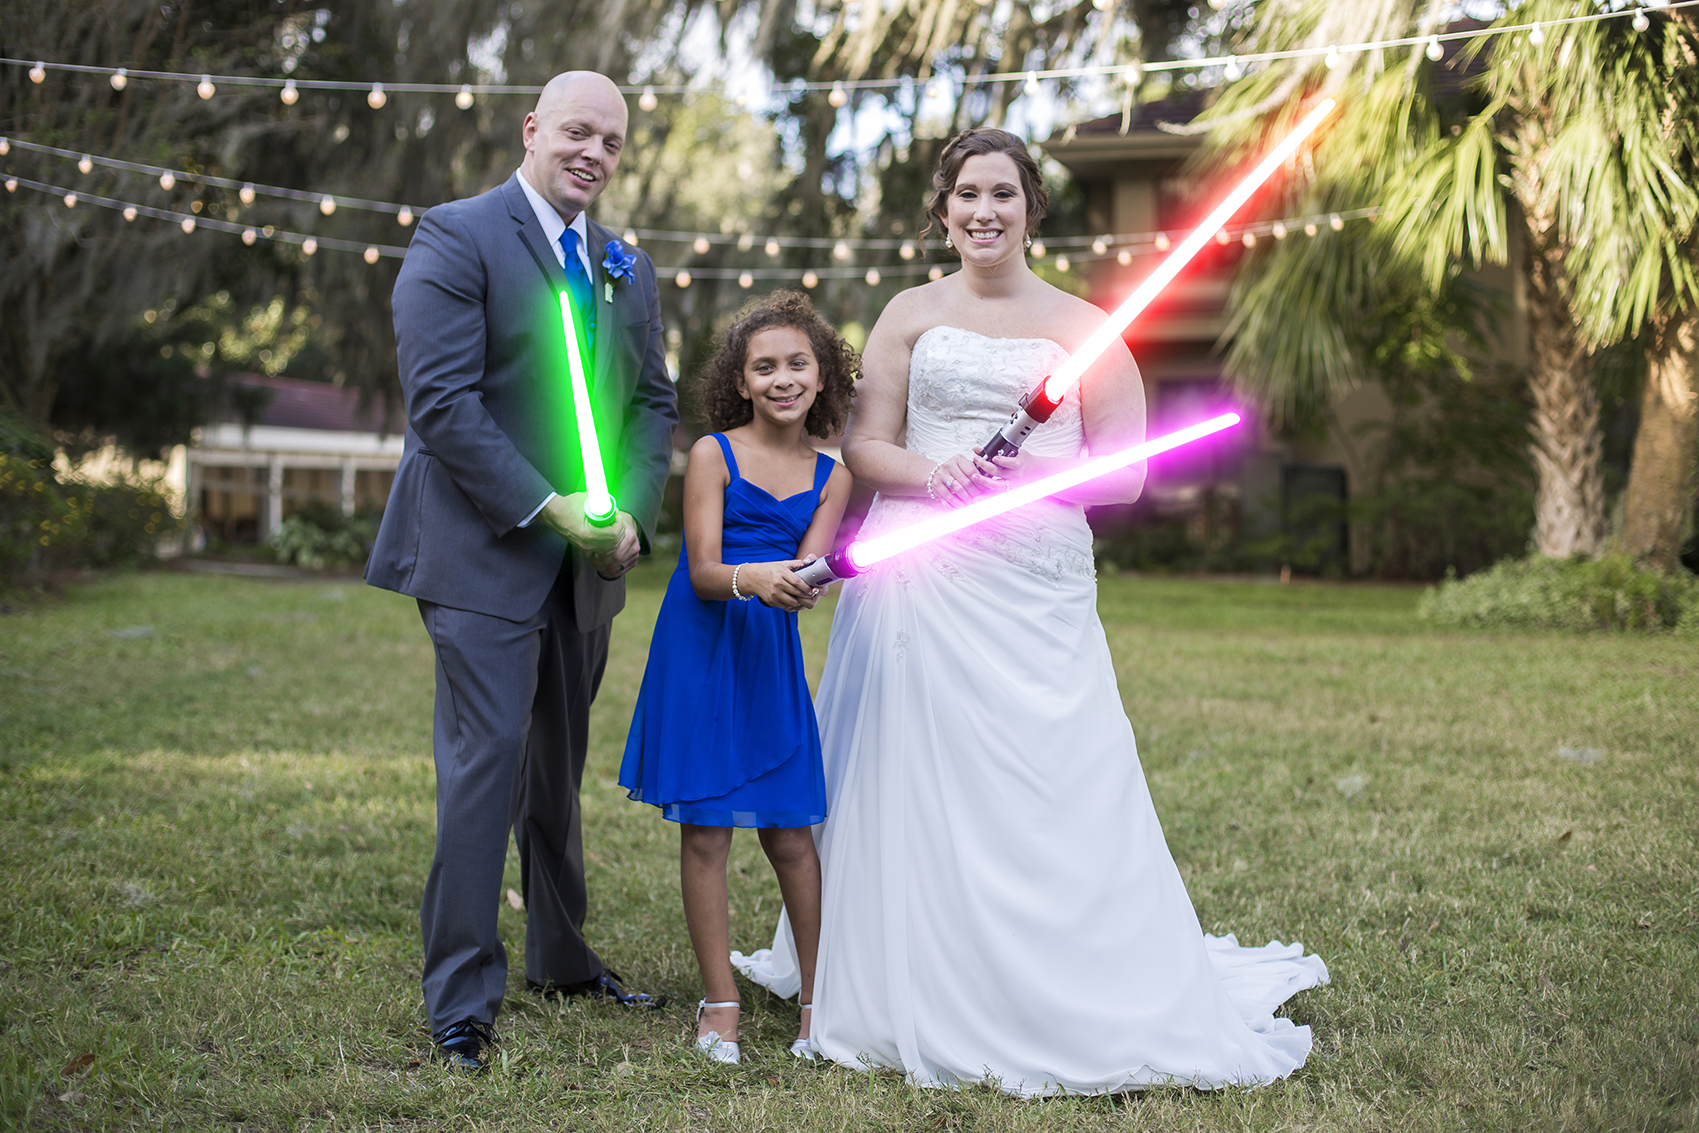 adam-szarmack-star-wars-wedding-jacksonville-photographer-32.jpg